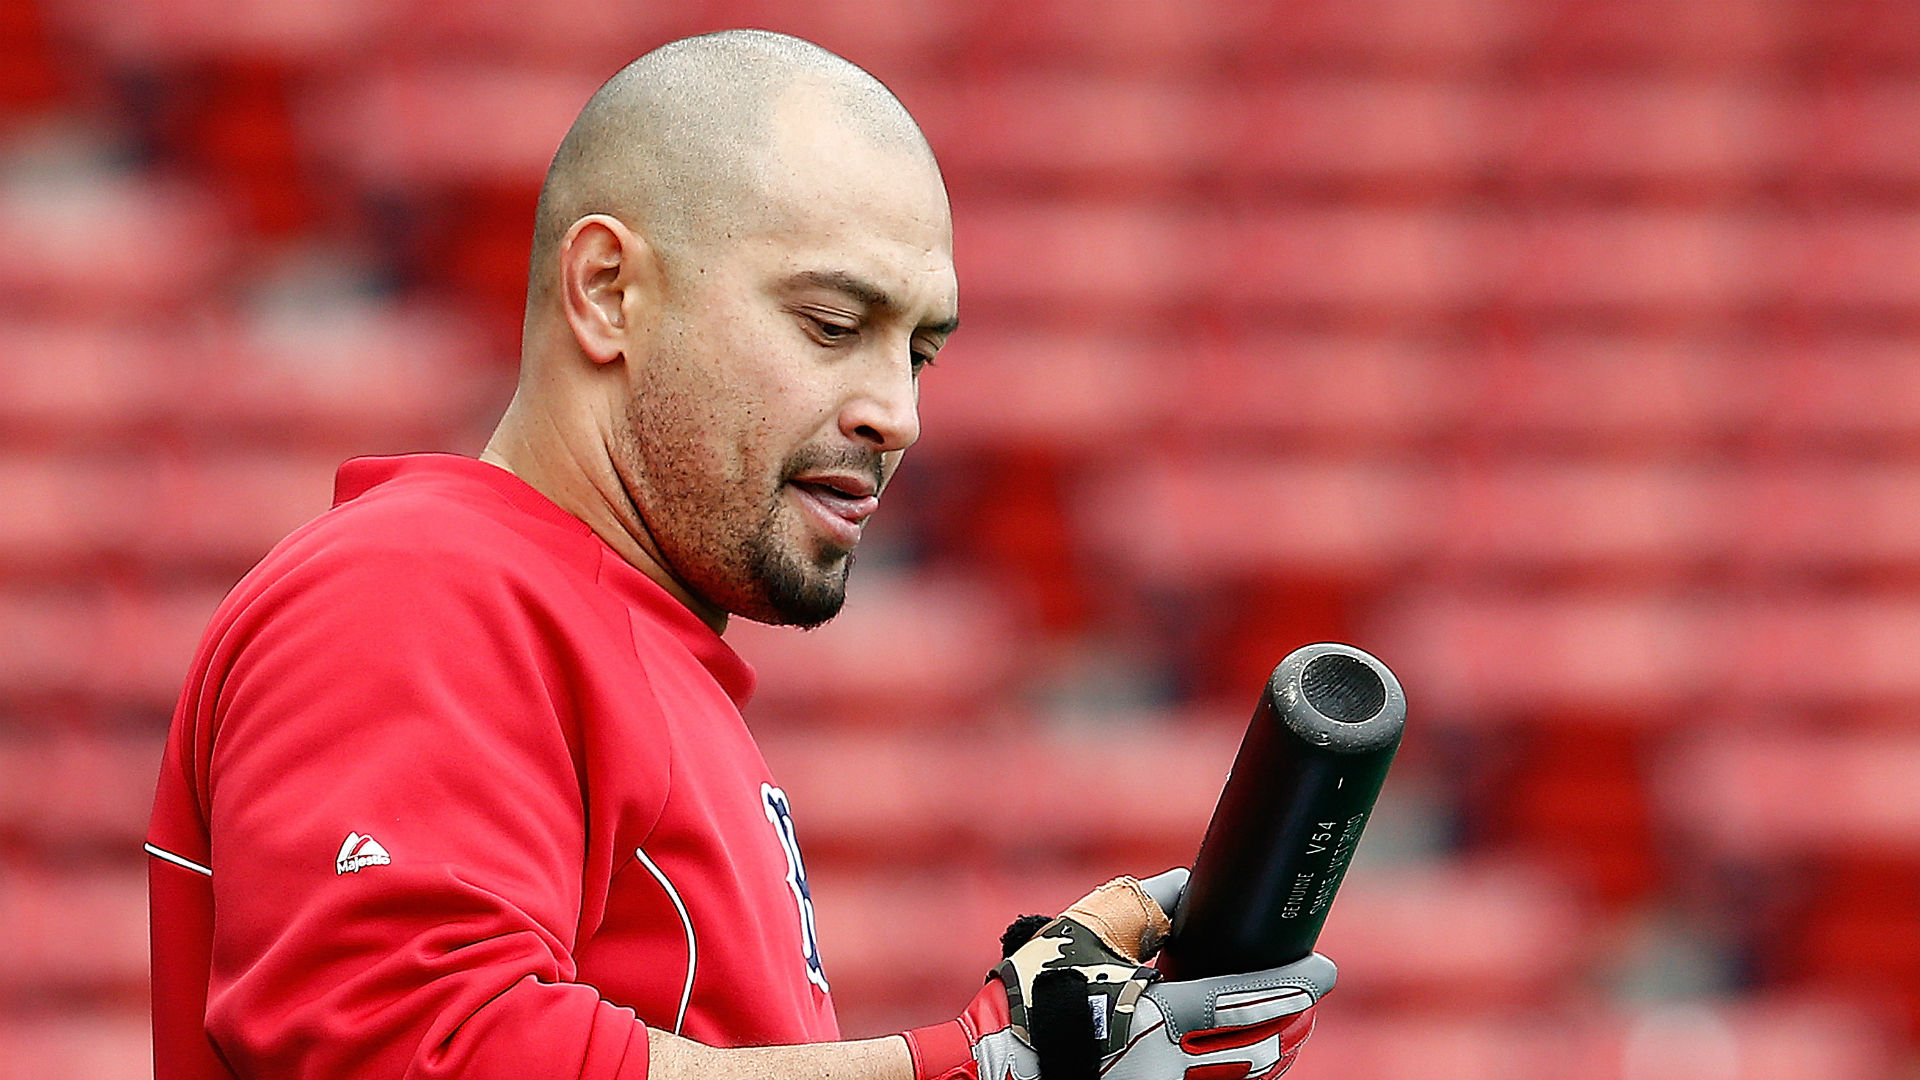 MLB trade rumors: Angels acquire outfielder Shane Victorino from Red Sox